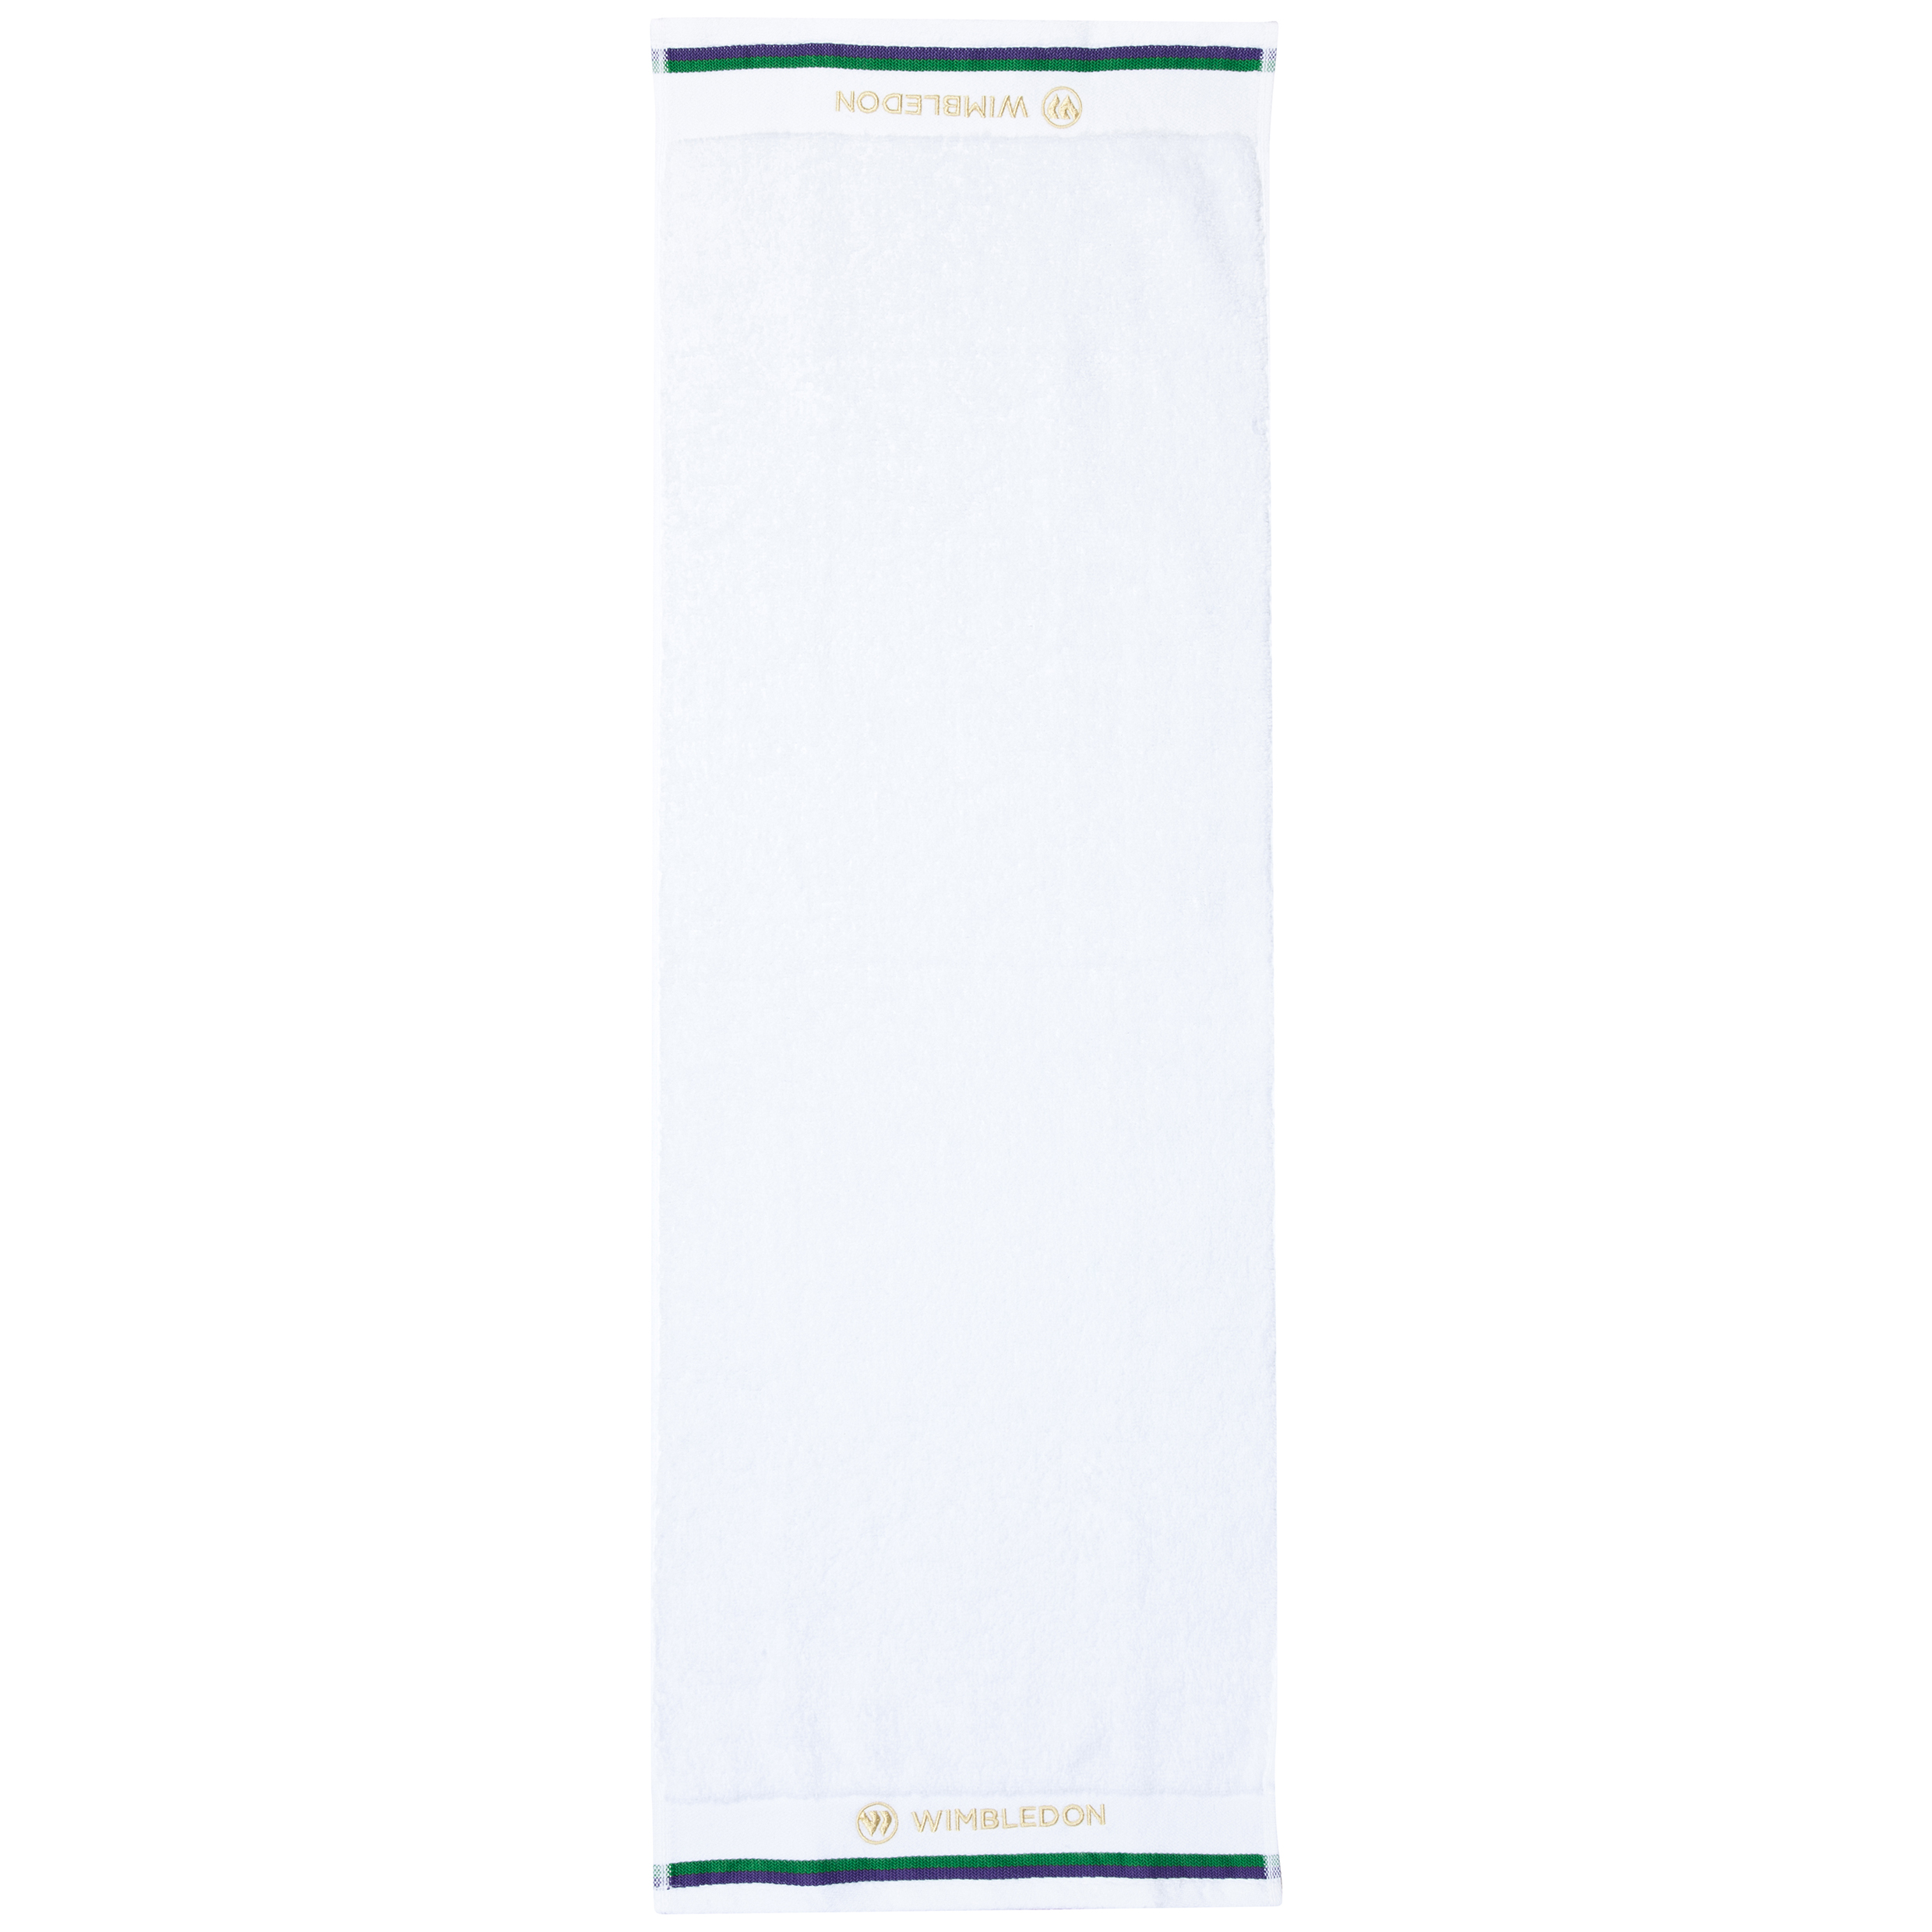 Wimbledon Sports Towel